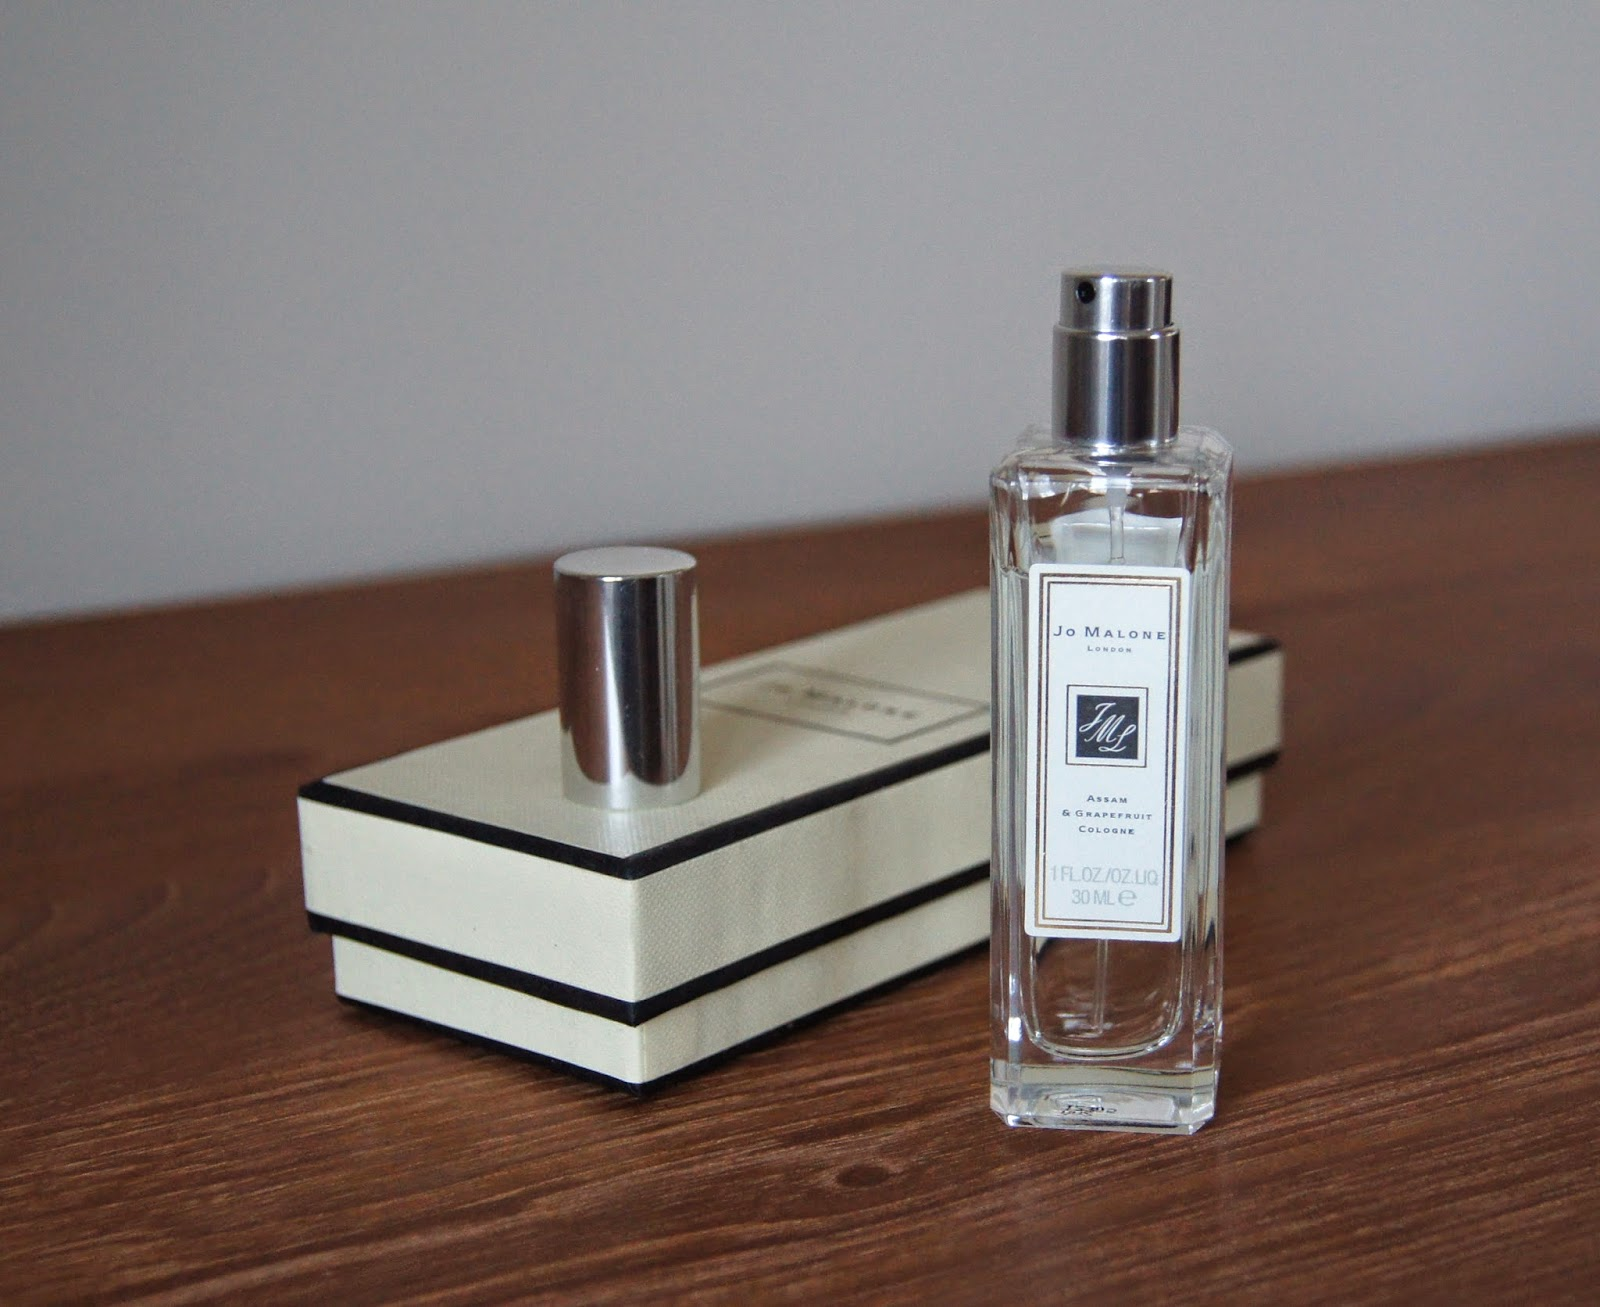 jo malone assam and grapefruit cologne fragrance review